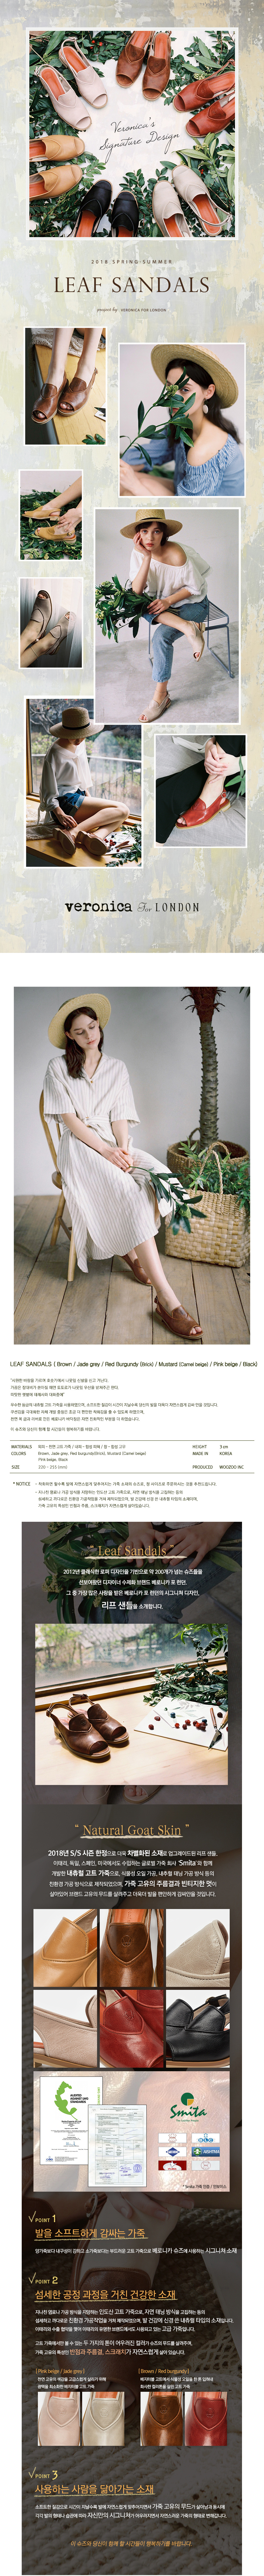 베로니카포런던(VERONICA FOR LONDON) LEAF SANDALS (Jade grey)